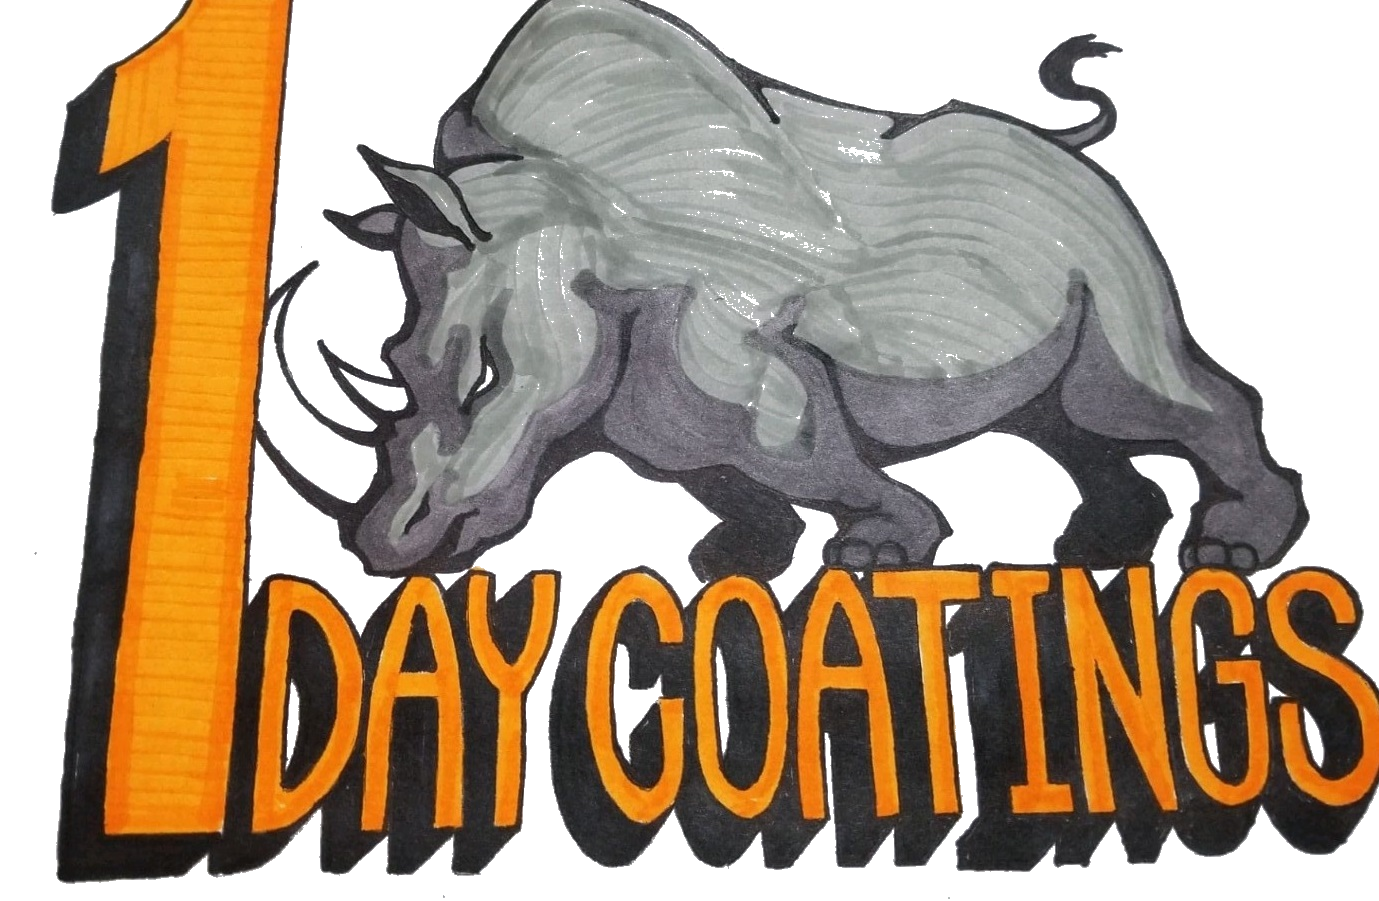 1 Day Coatings